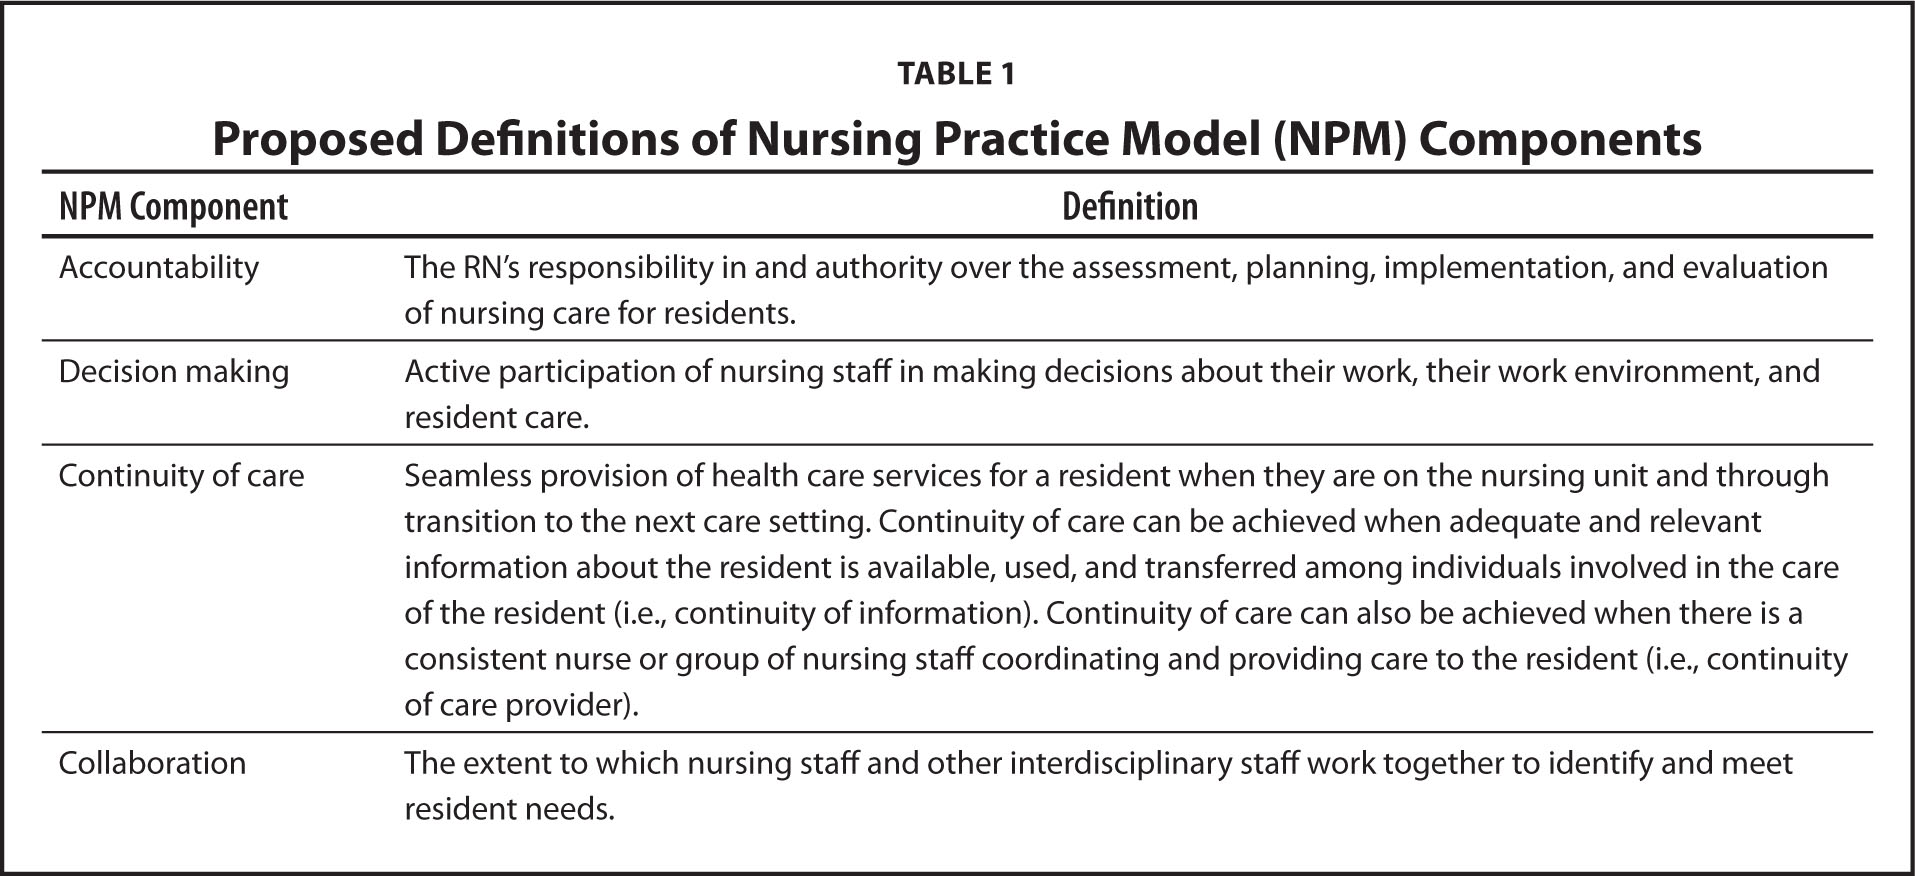 Proposed Definitions of Nursing Practice Model (NPM) Components